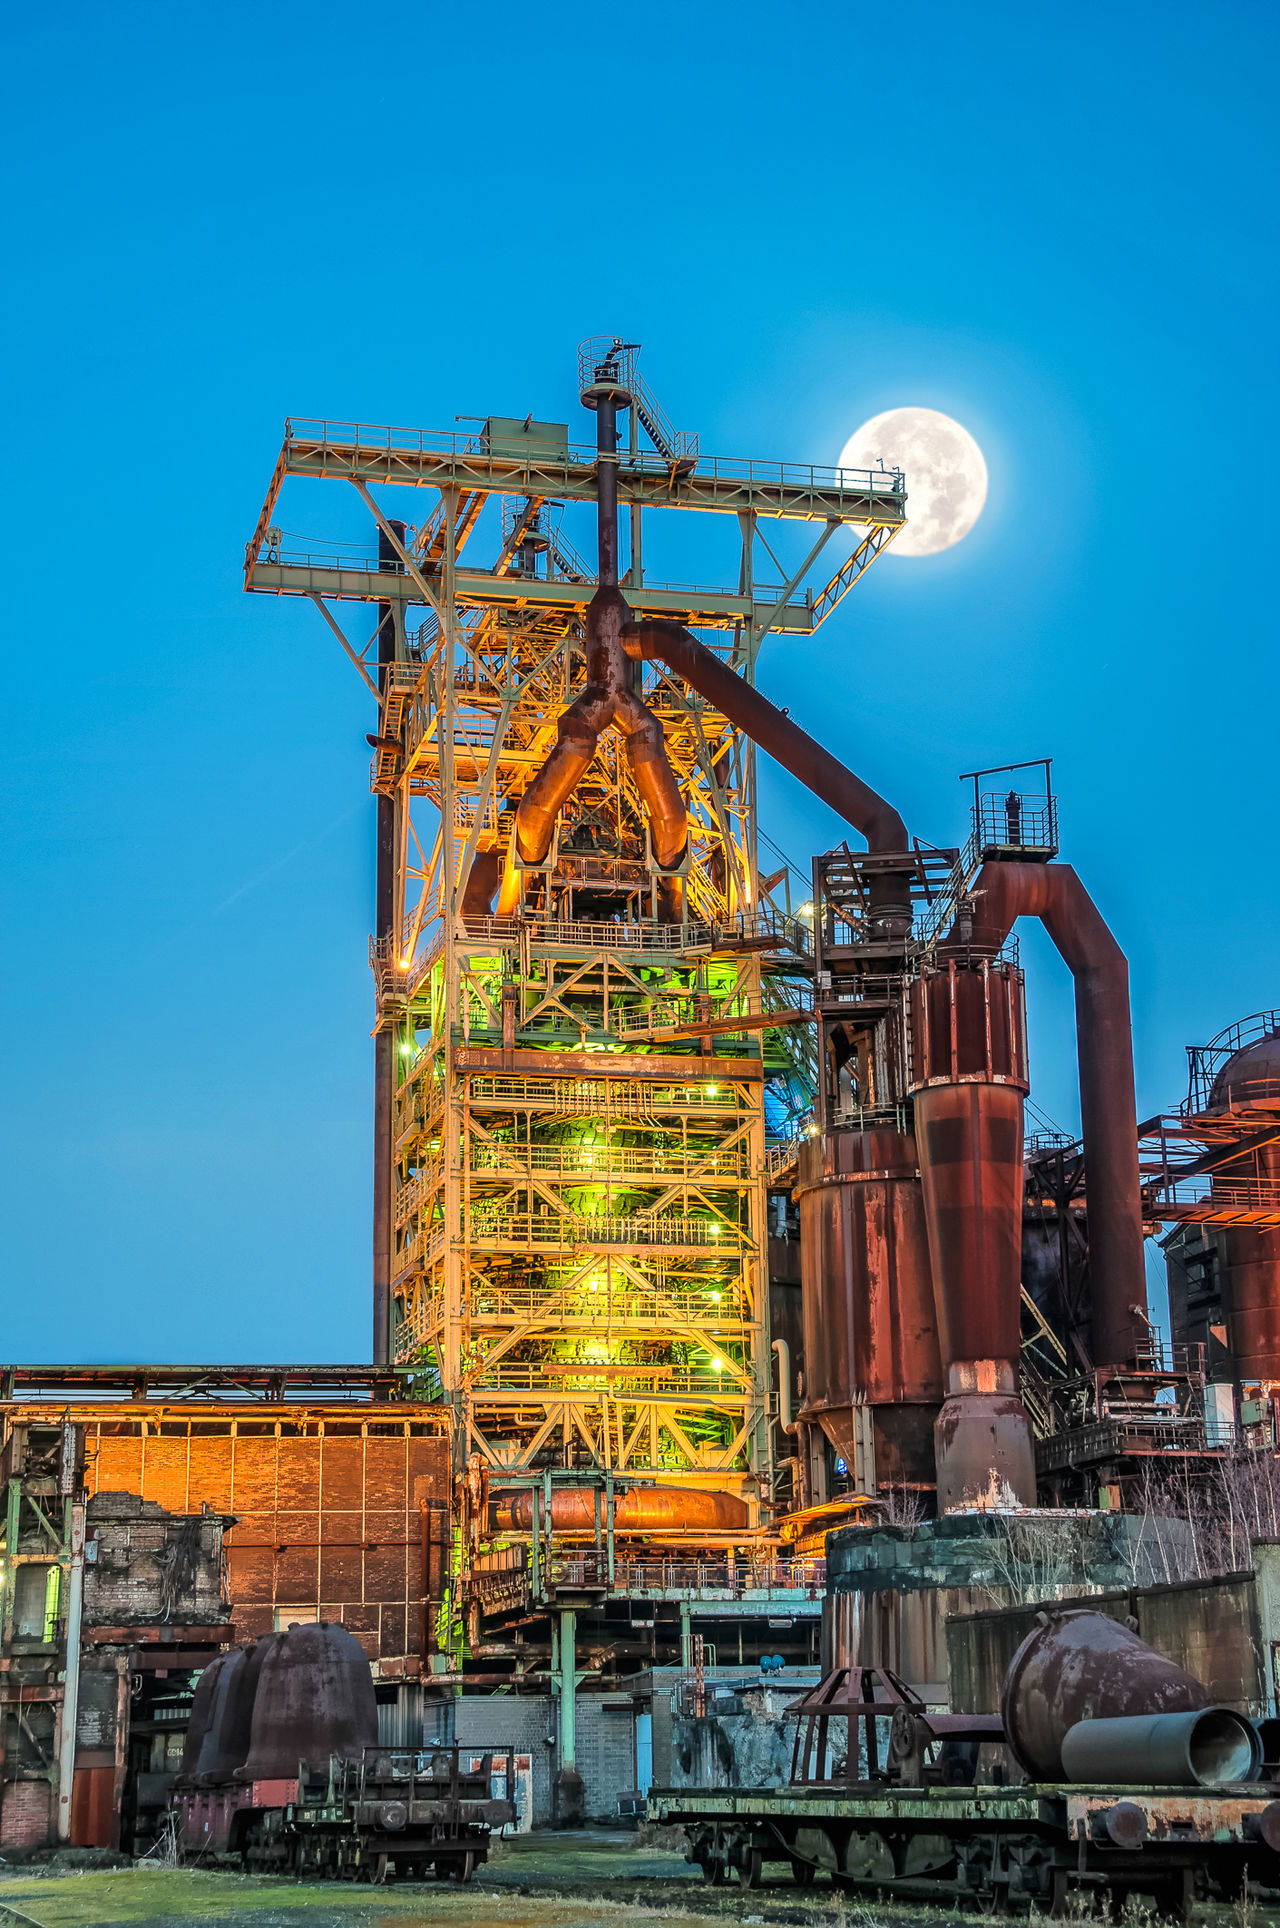 Schichtende! End of work. Industry Blast Furnace HDR Collection Industrial Photography Hochofen Blue Hour Moon Variation Factory Night View Factory Industrieromantik